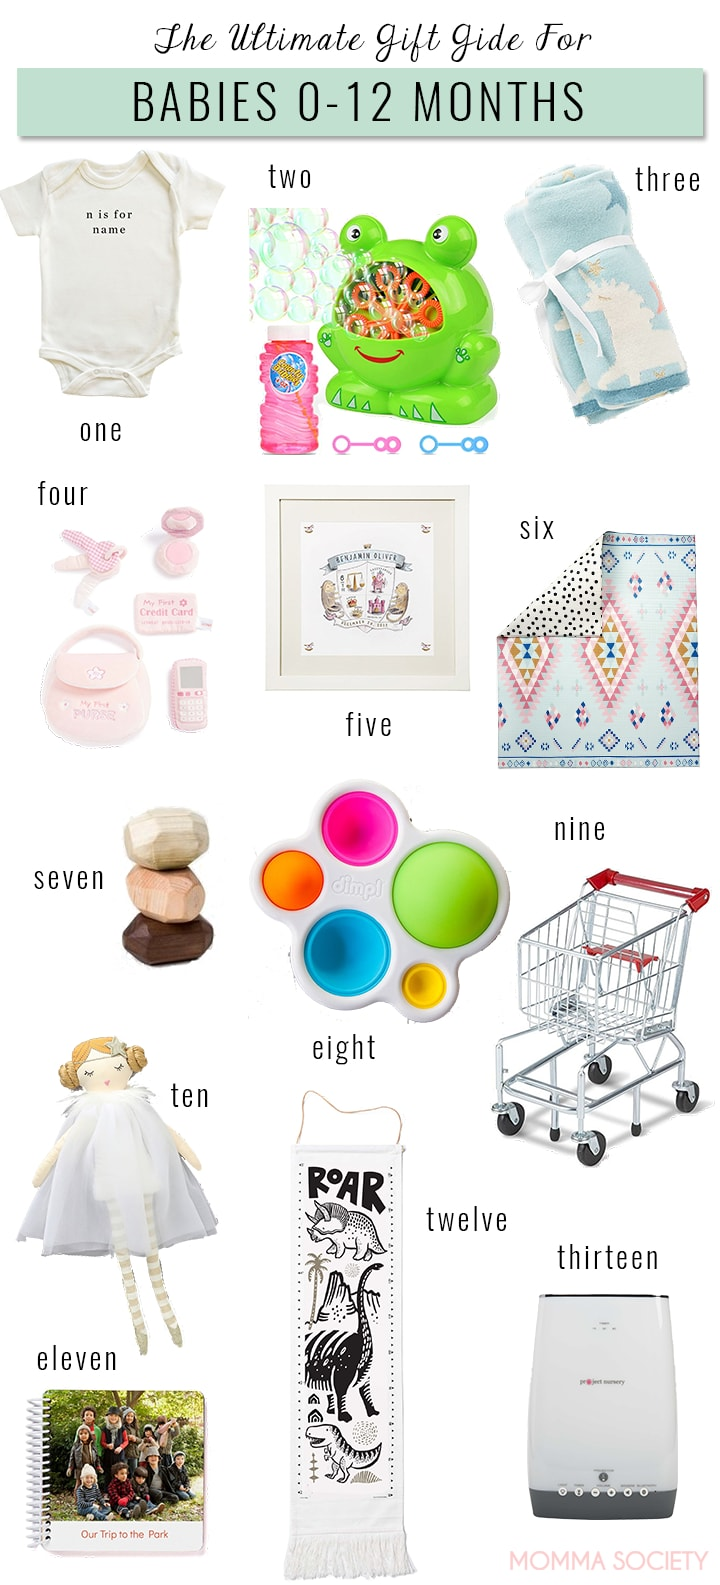 Holiday Gift Gide for Babies 0-1